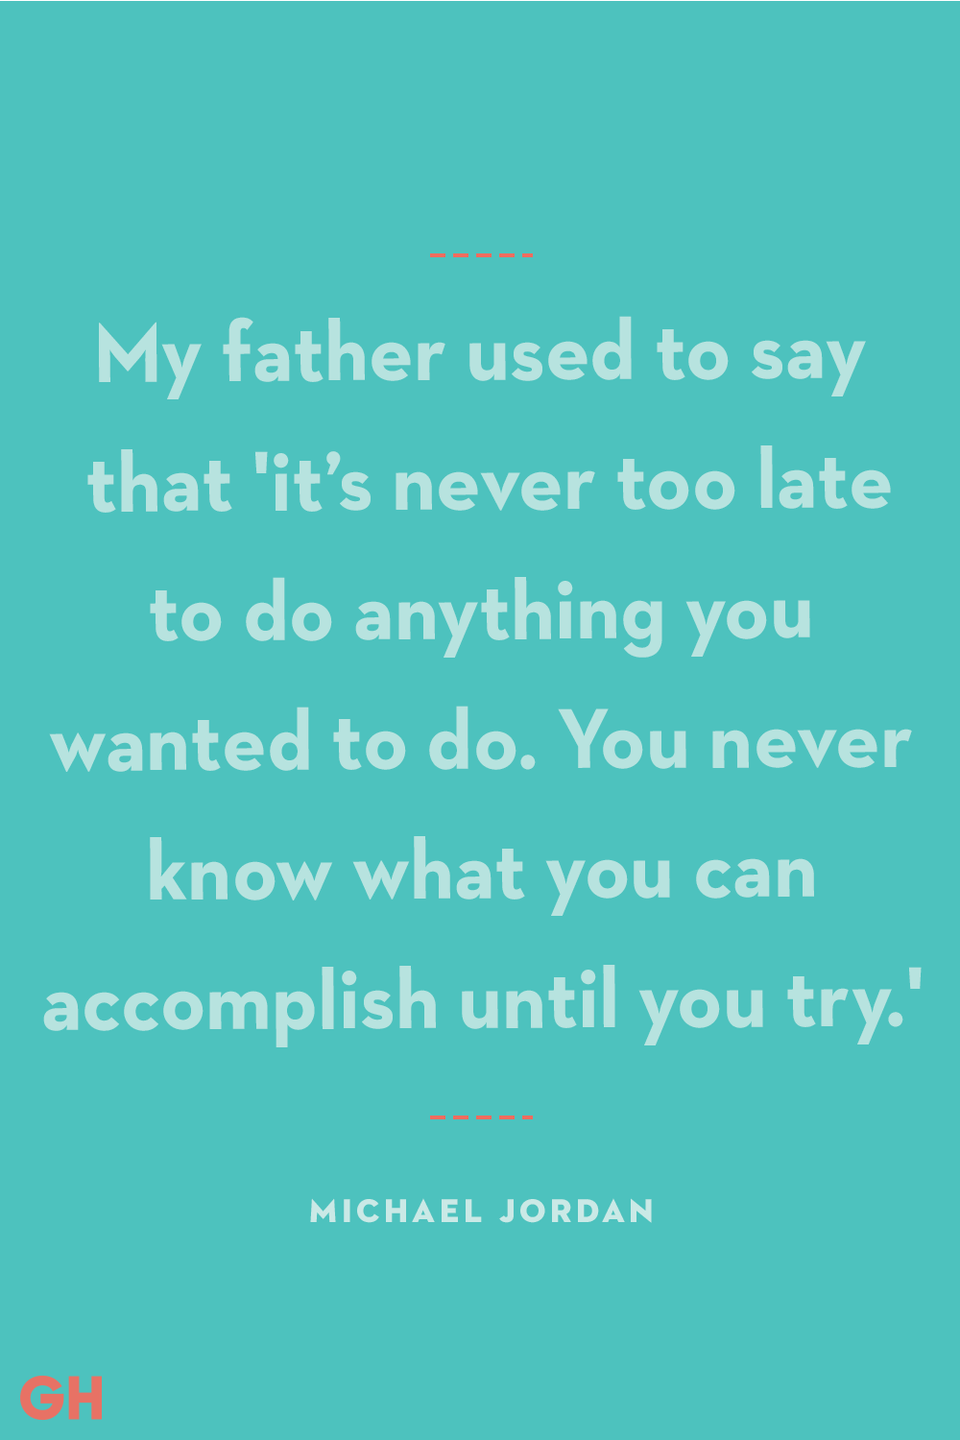 """<p>My father used to say that 'it's never too late to do anything you wanted to do. You never know what you can accomplish until you try.'</p><p><strong>RELATED:</strong> <a href=""""https://www.goodhousekeeping.com/holidays/fathers-day/g19831972/fathers-day-gifts-from-daughter/"""" rel=""""nofollow noopener"""" target=""""_blank"""" data-ylk=""""slk:25 Amazing Father's Day Gift Ideas from Daughter to Dad"""" class=""""link rapid-noclick-resp"""">25 Amazing Father's Day Gift Ideas from Daughter to Dad</a></p>"""